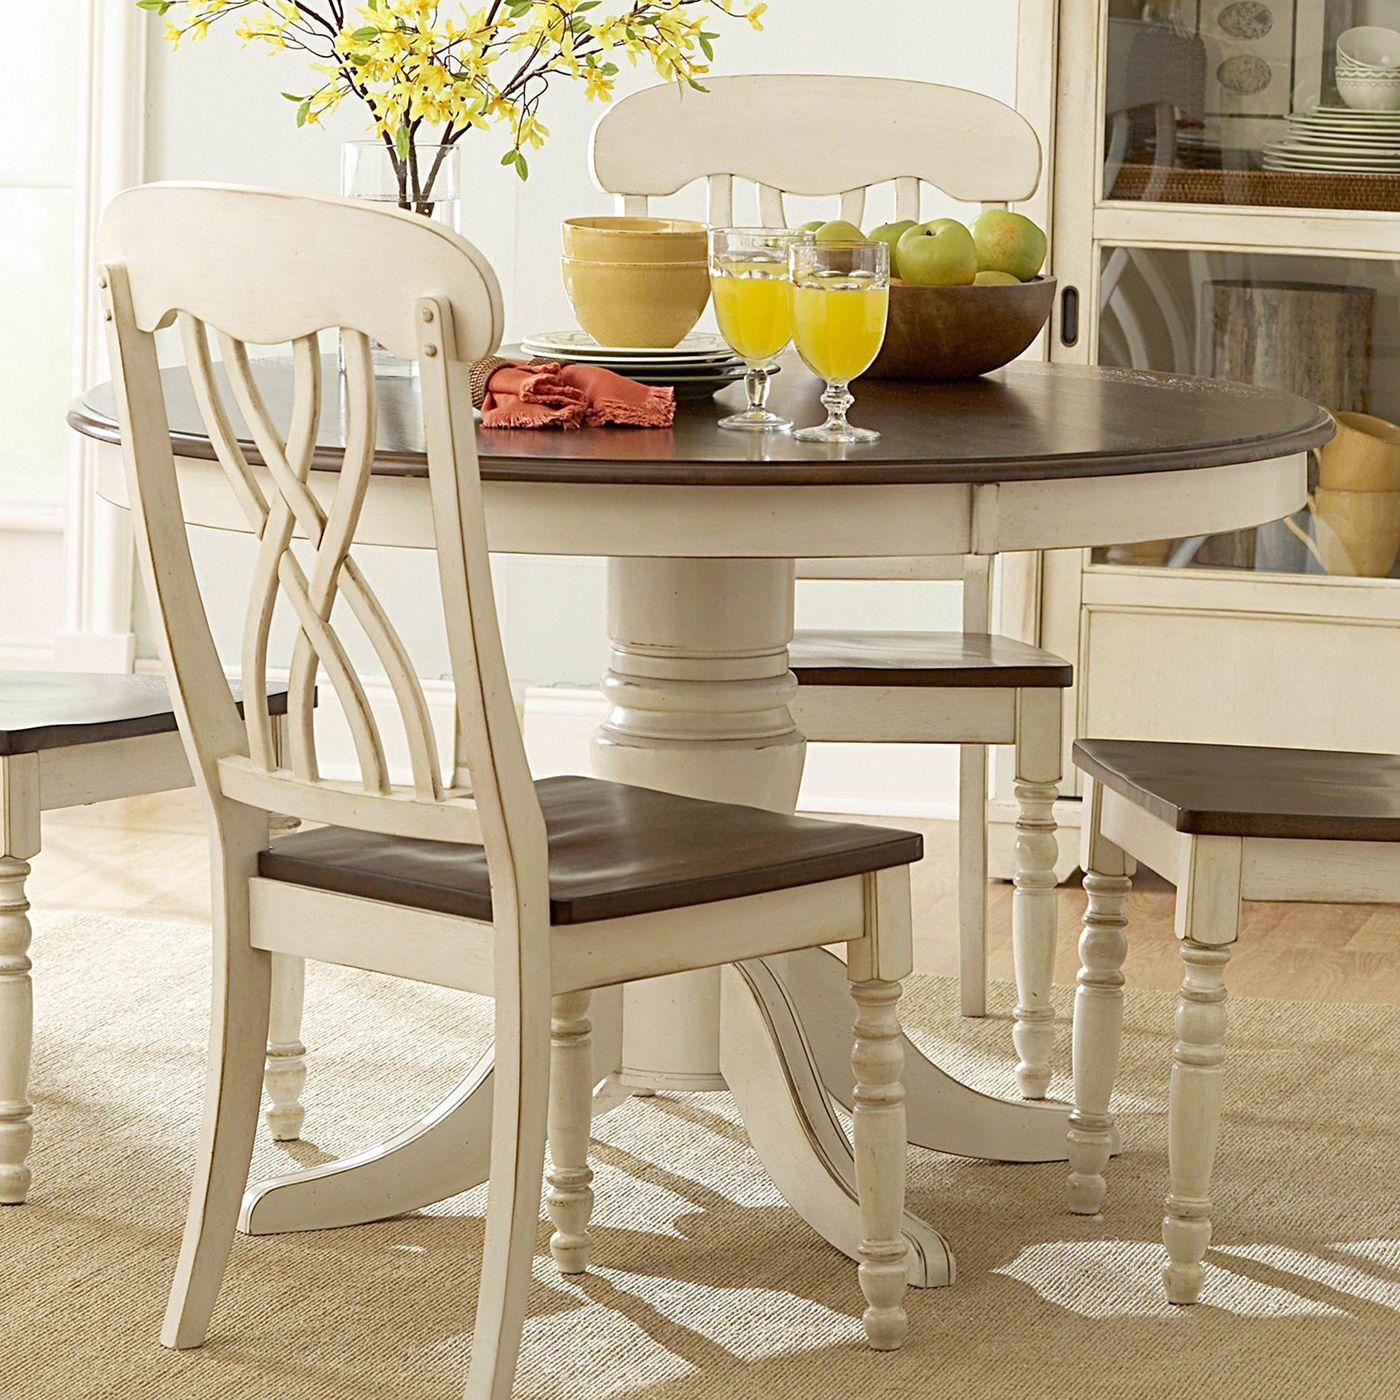 Breakfast Table Inspiration Piece The Cream Color And Antiquing White Round Dining